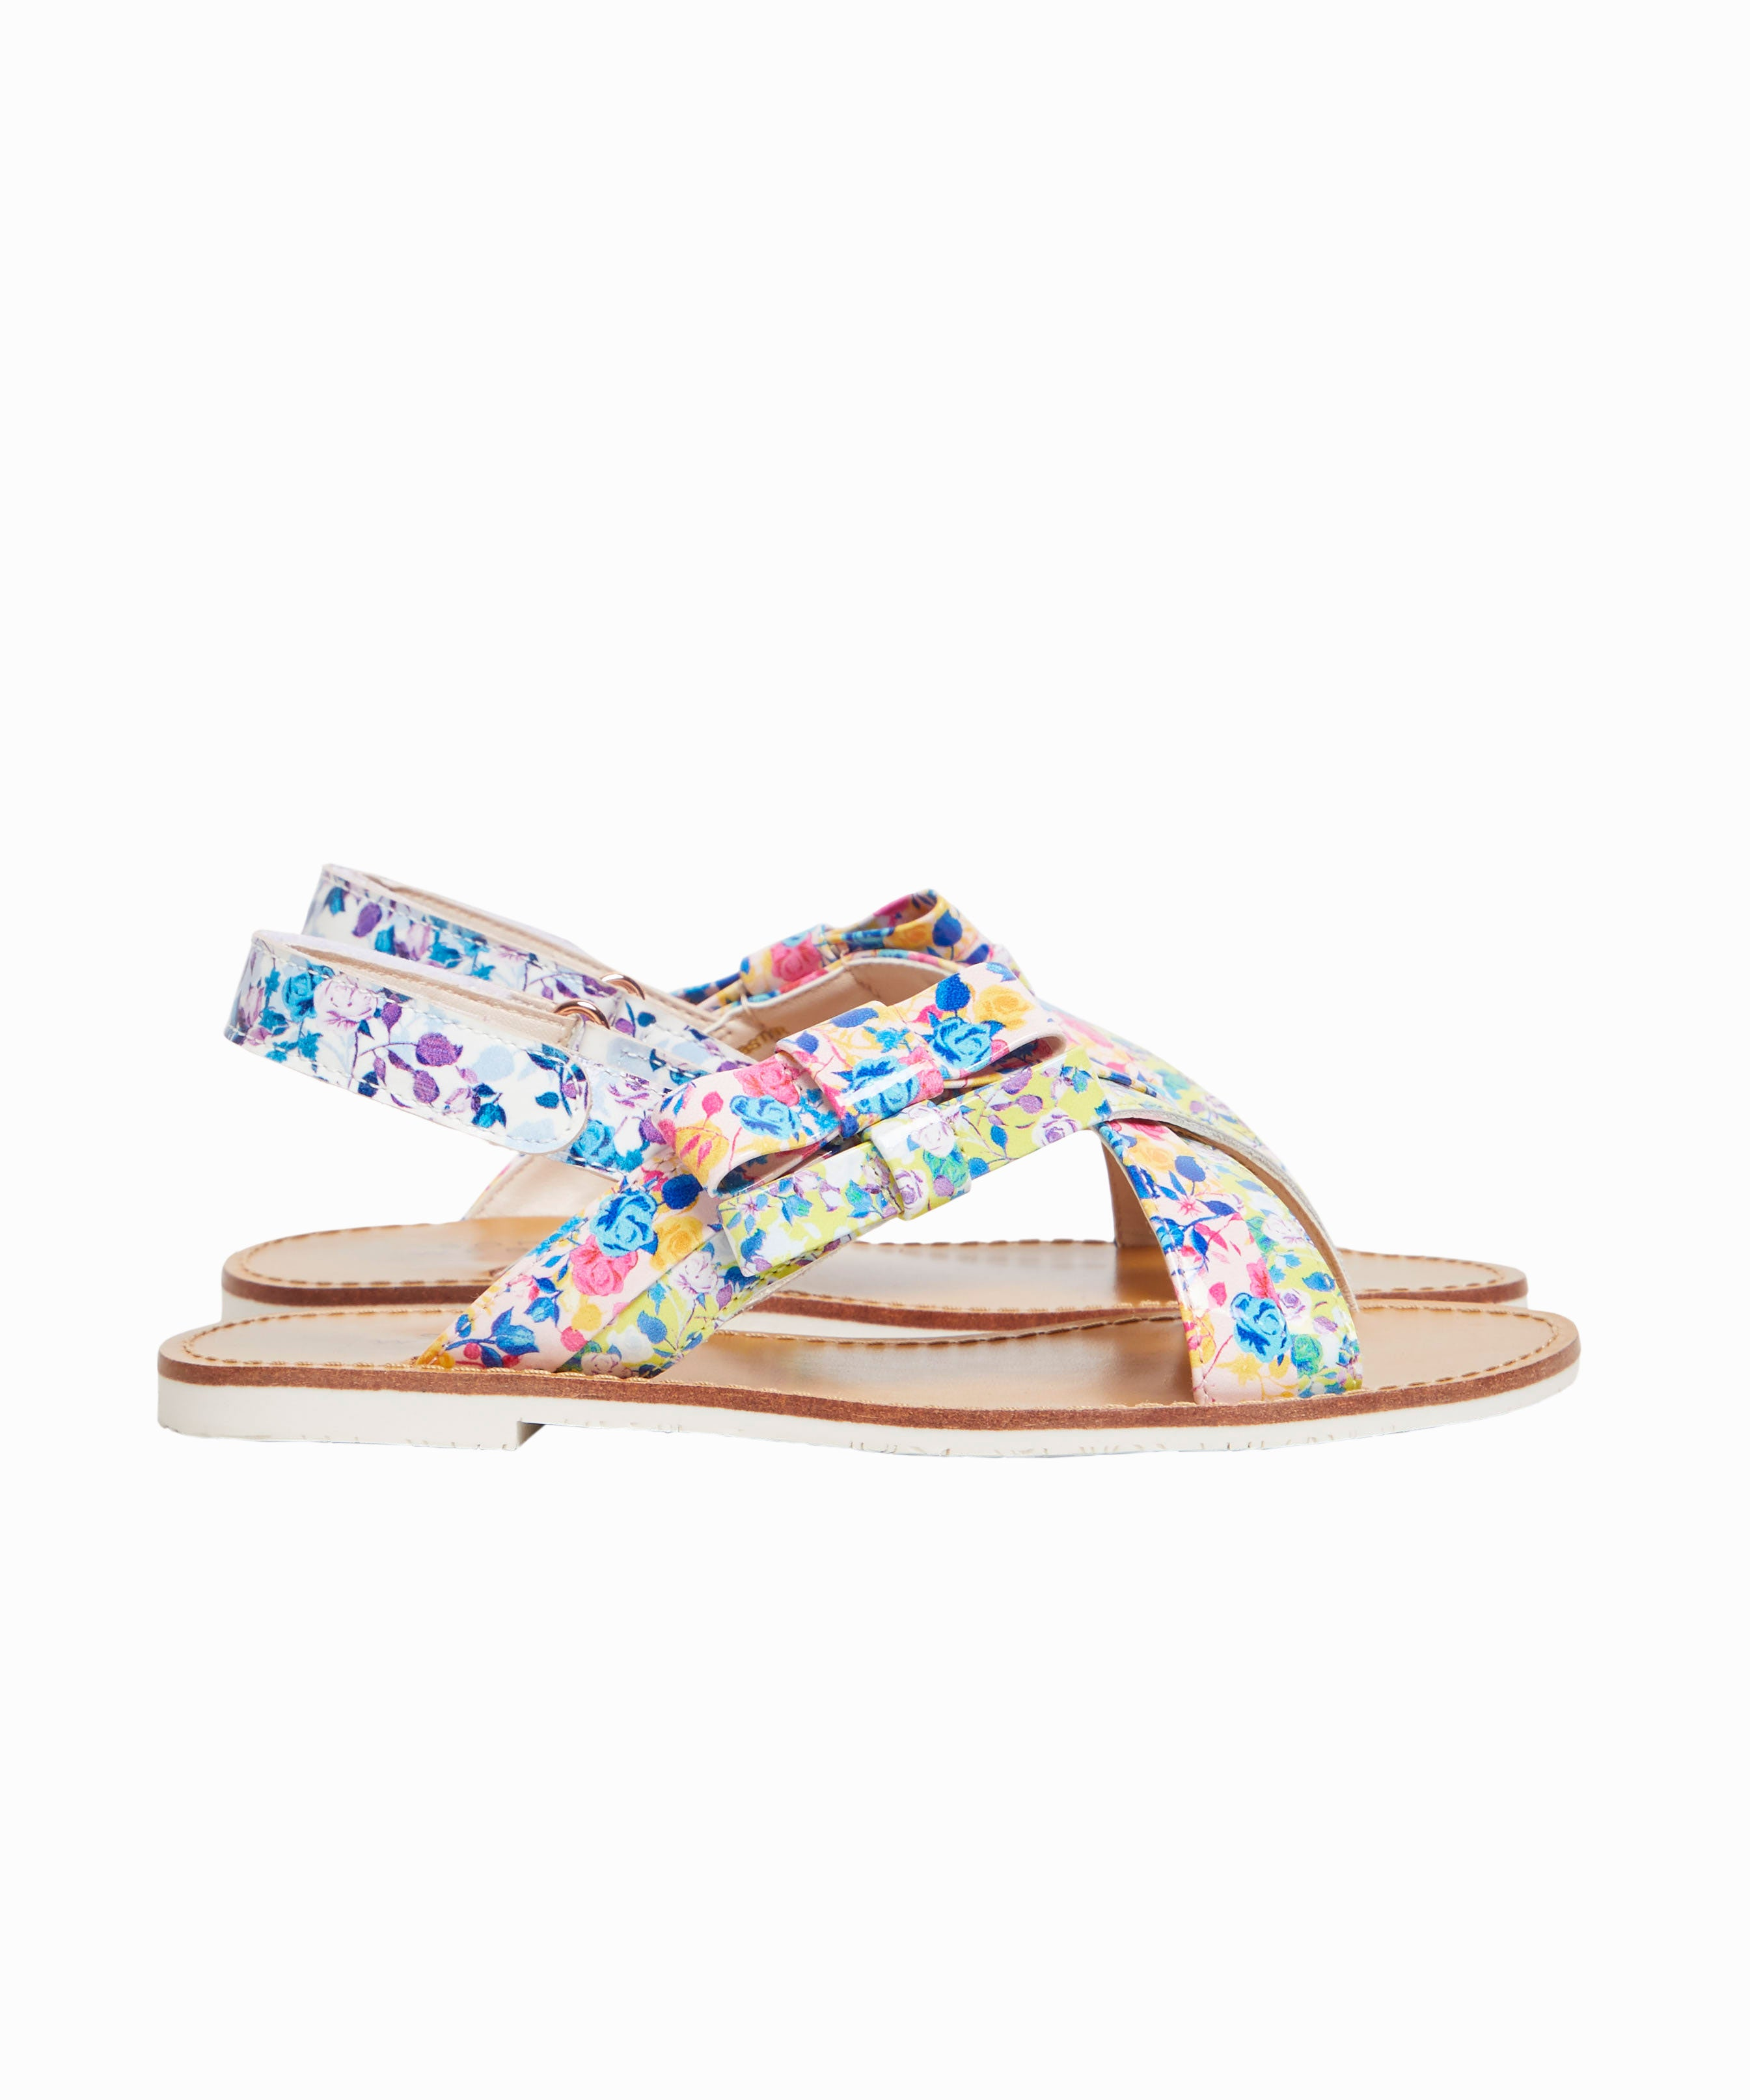 Andie Bow Sandals